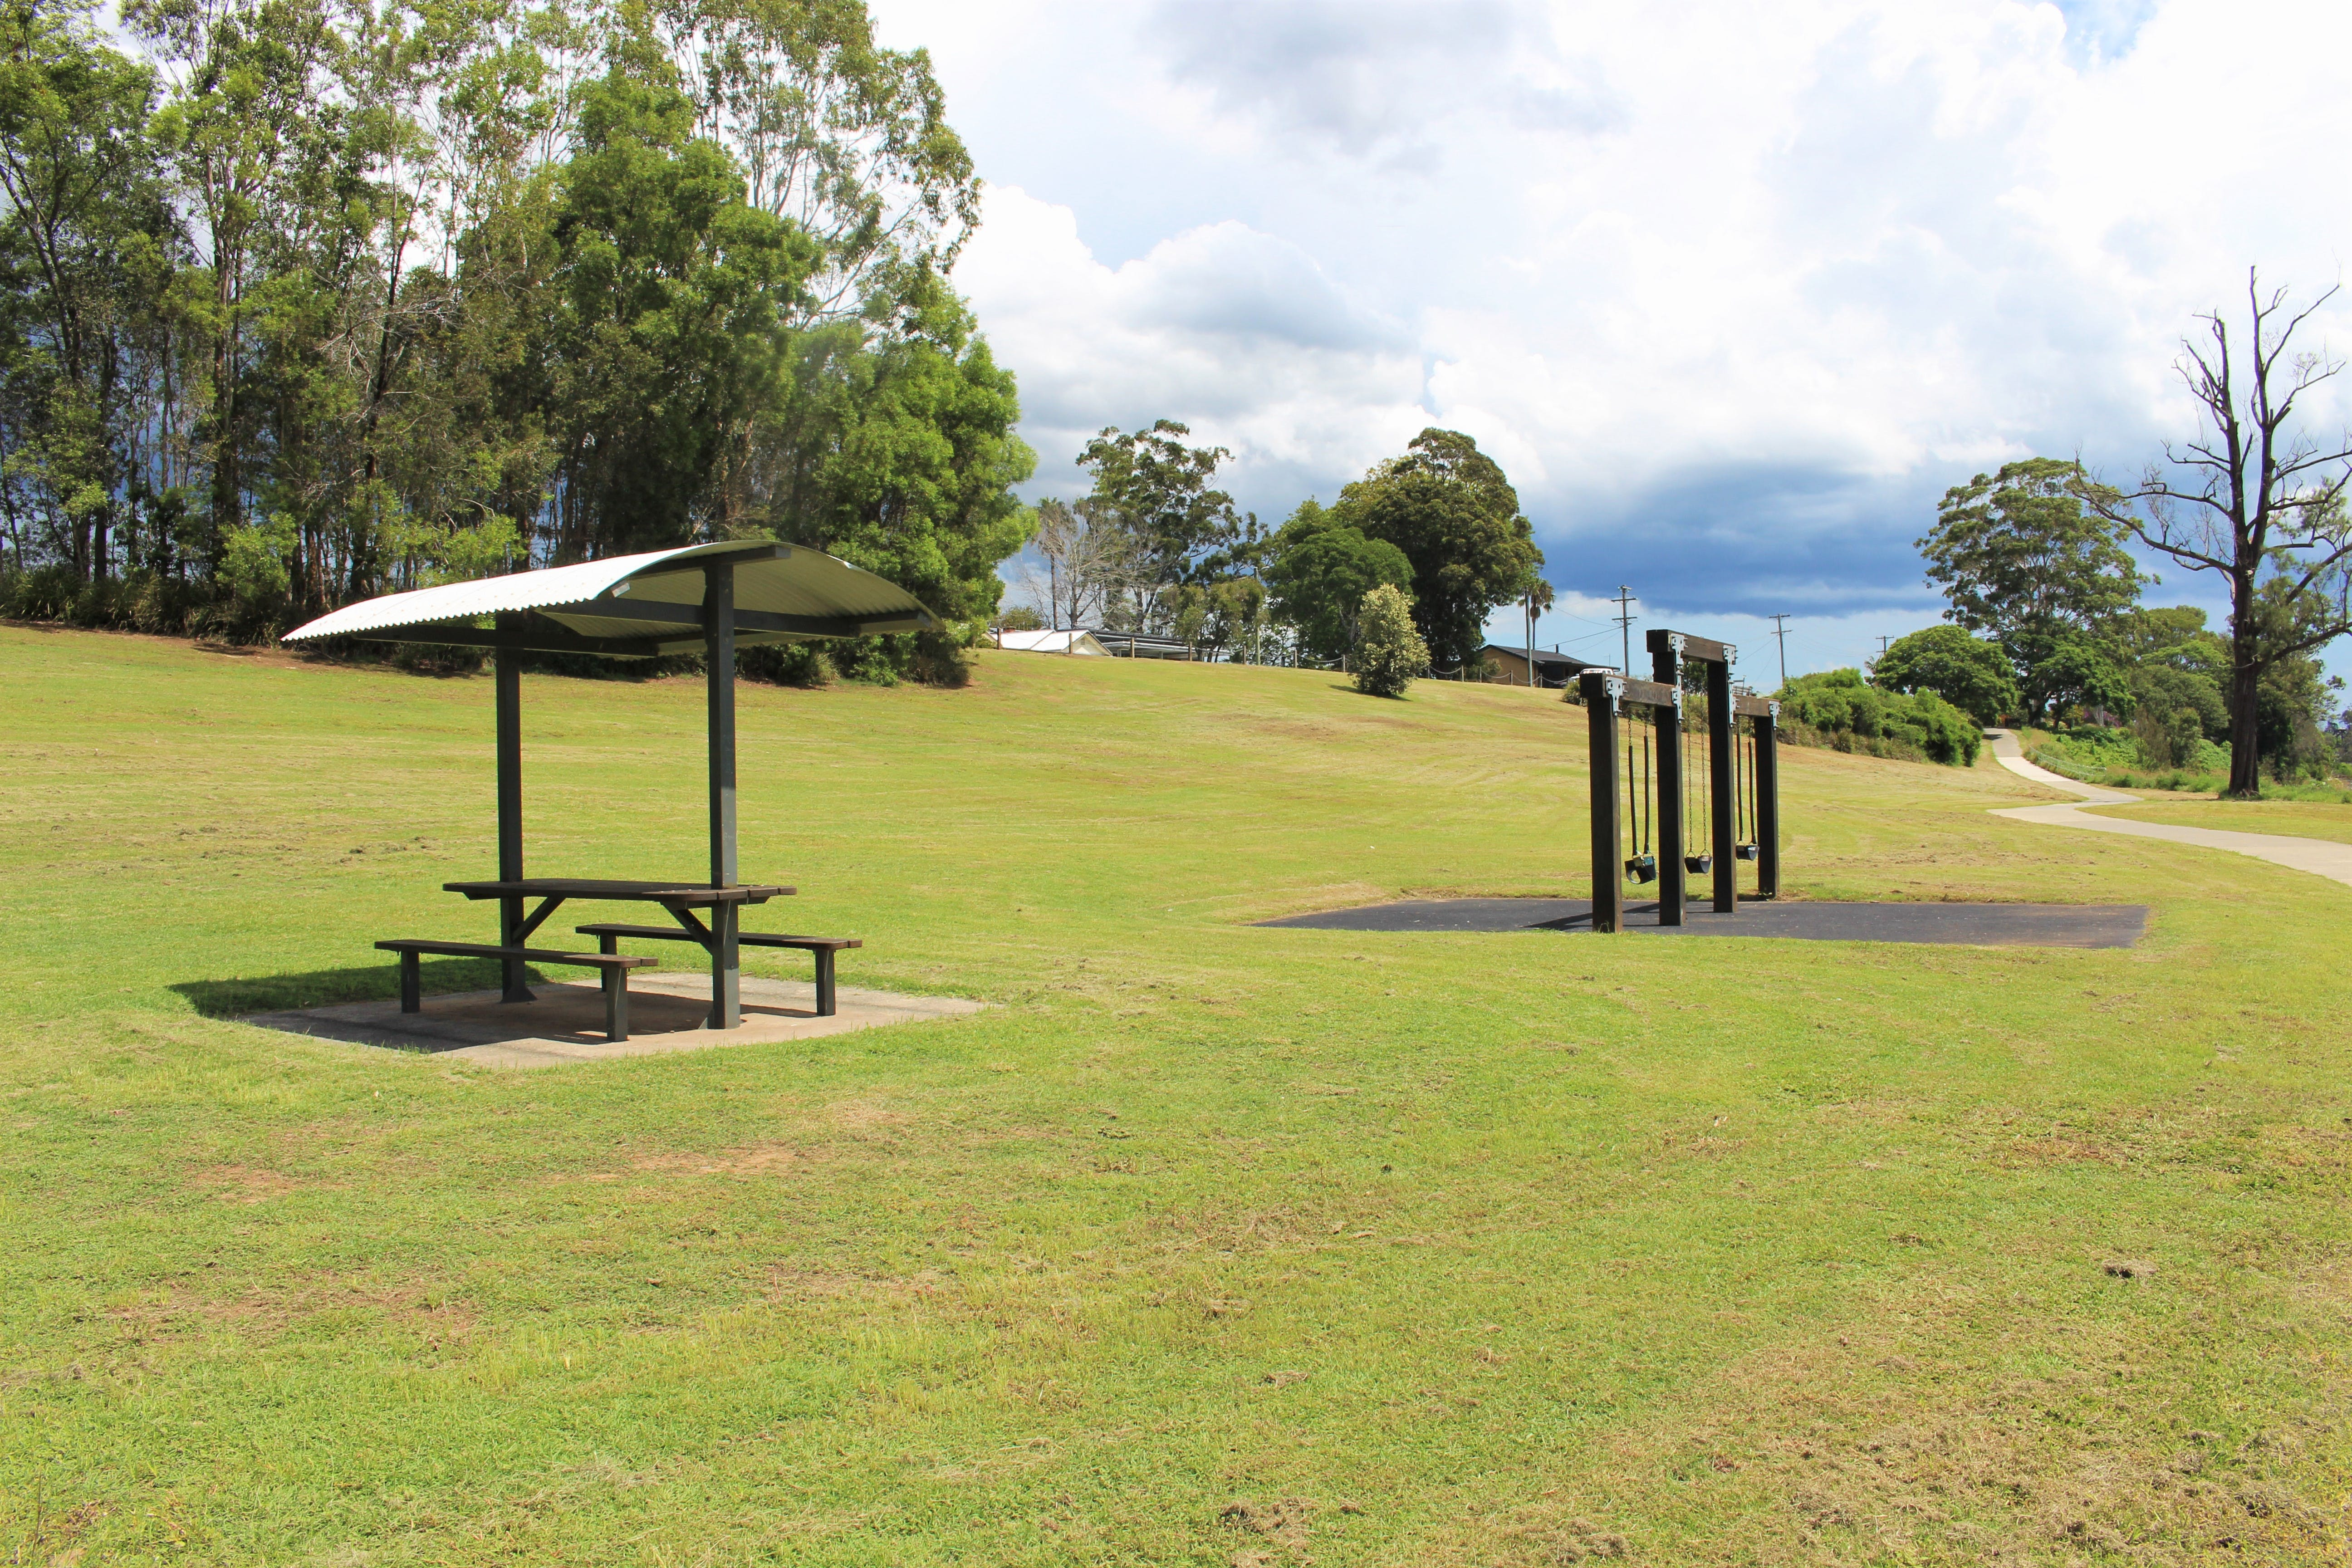 Existing covered seating and swings